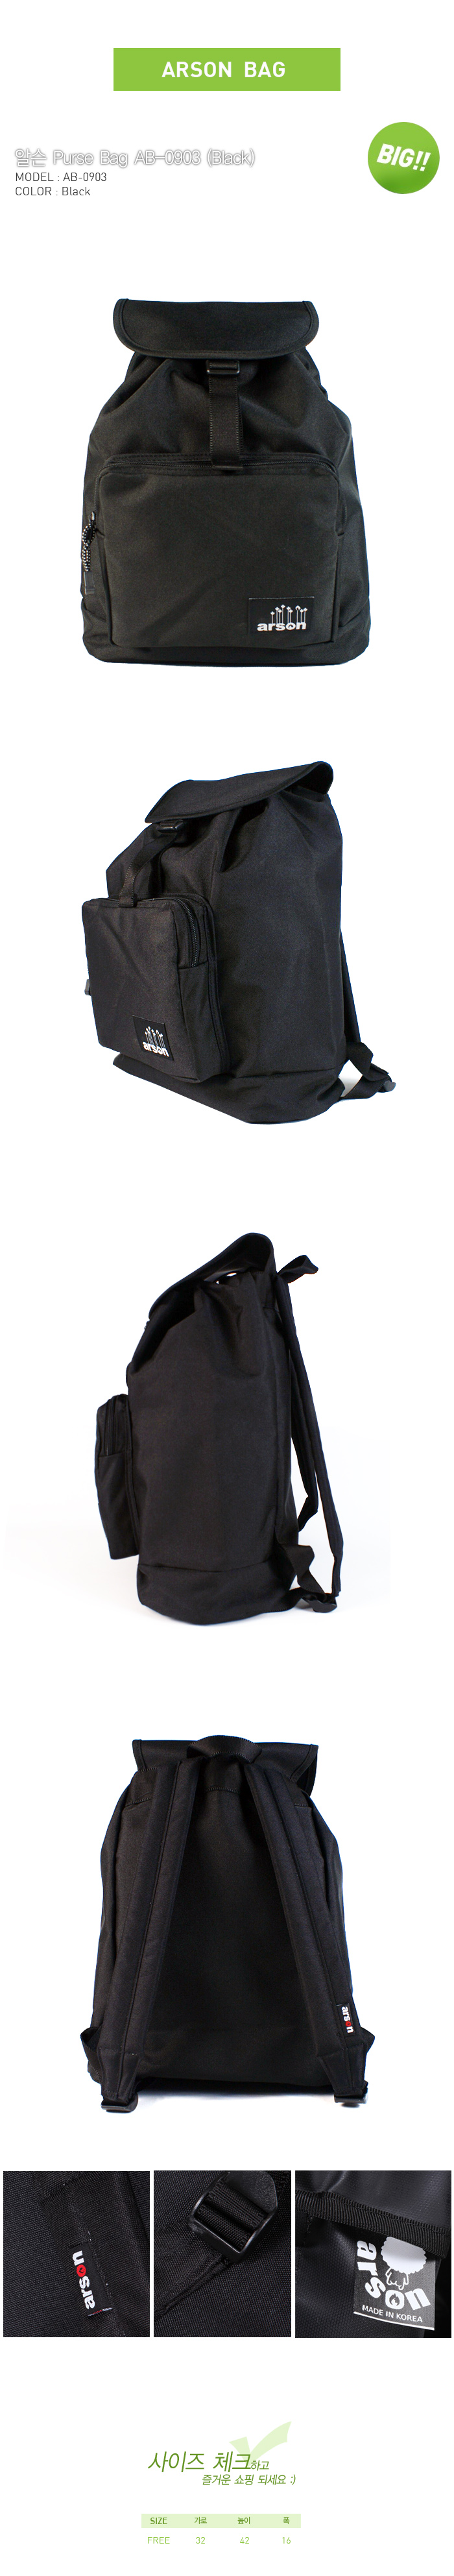 [ ARSON ] AB-0903 (Black)/Backpack School Bag